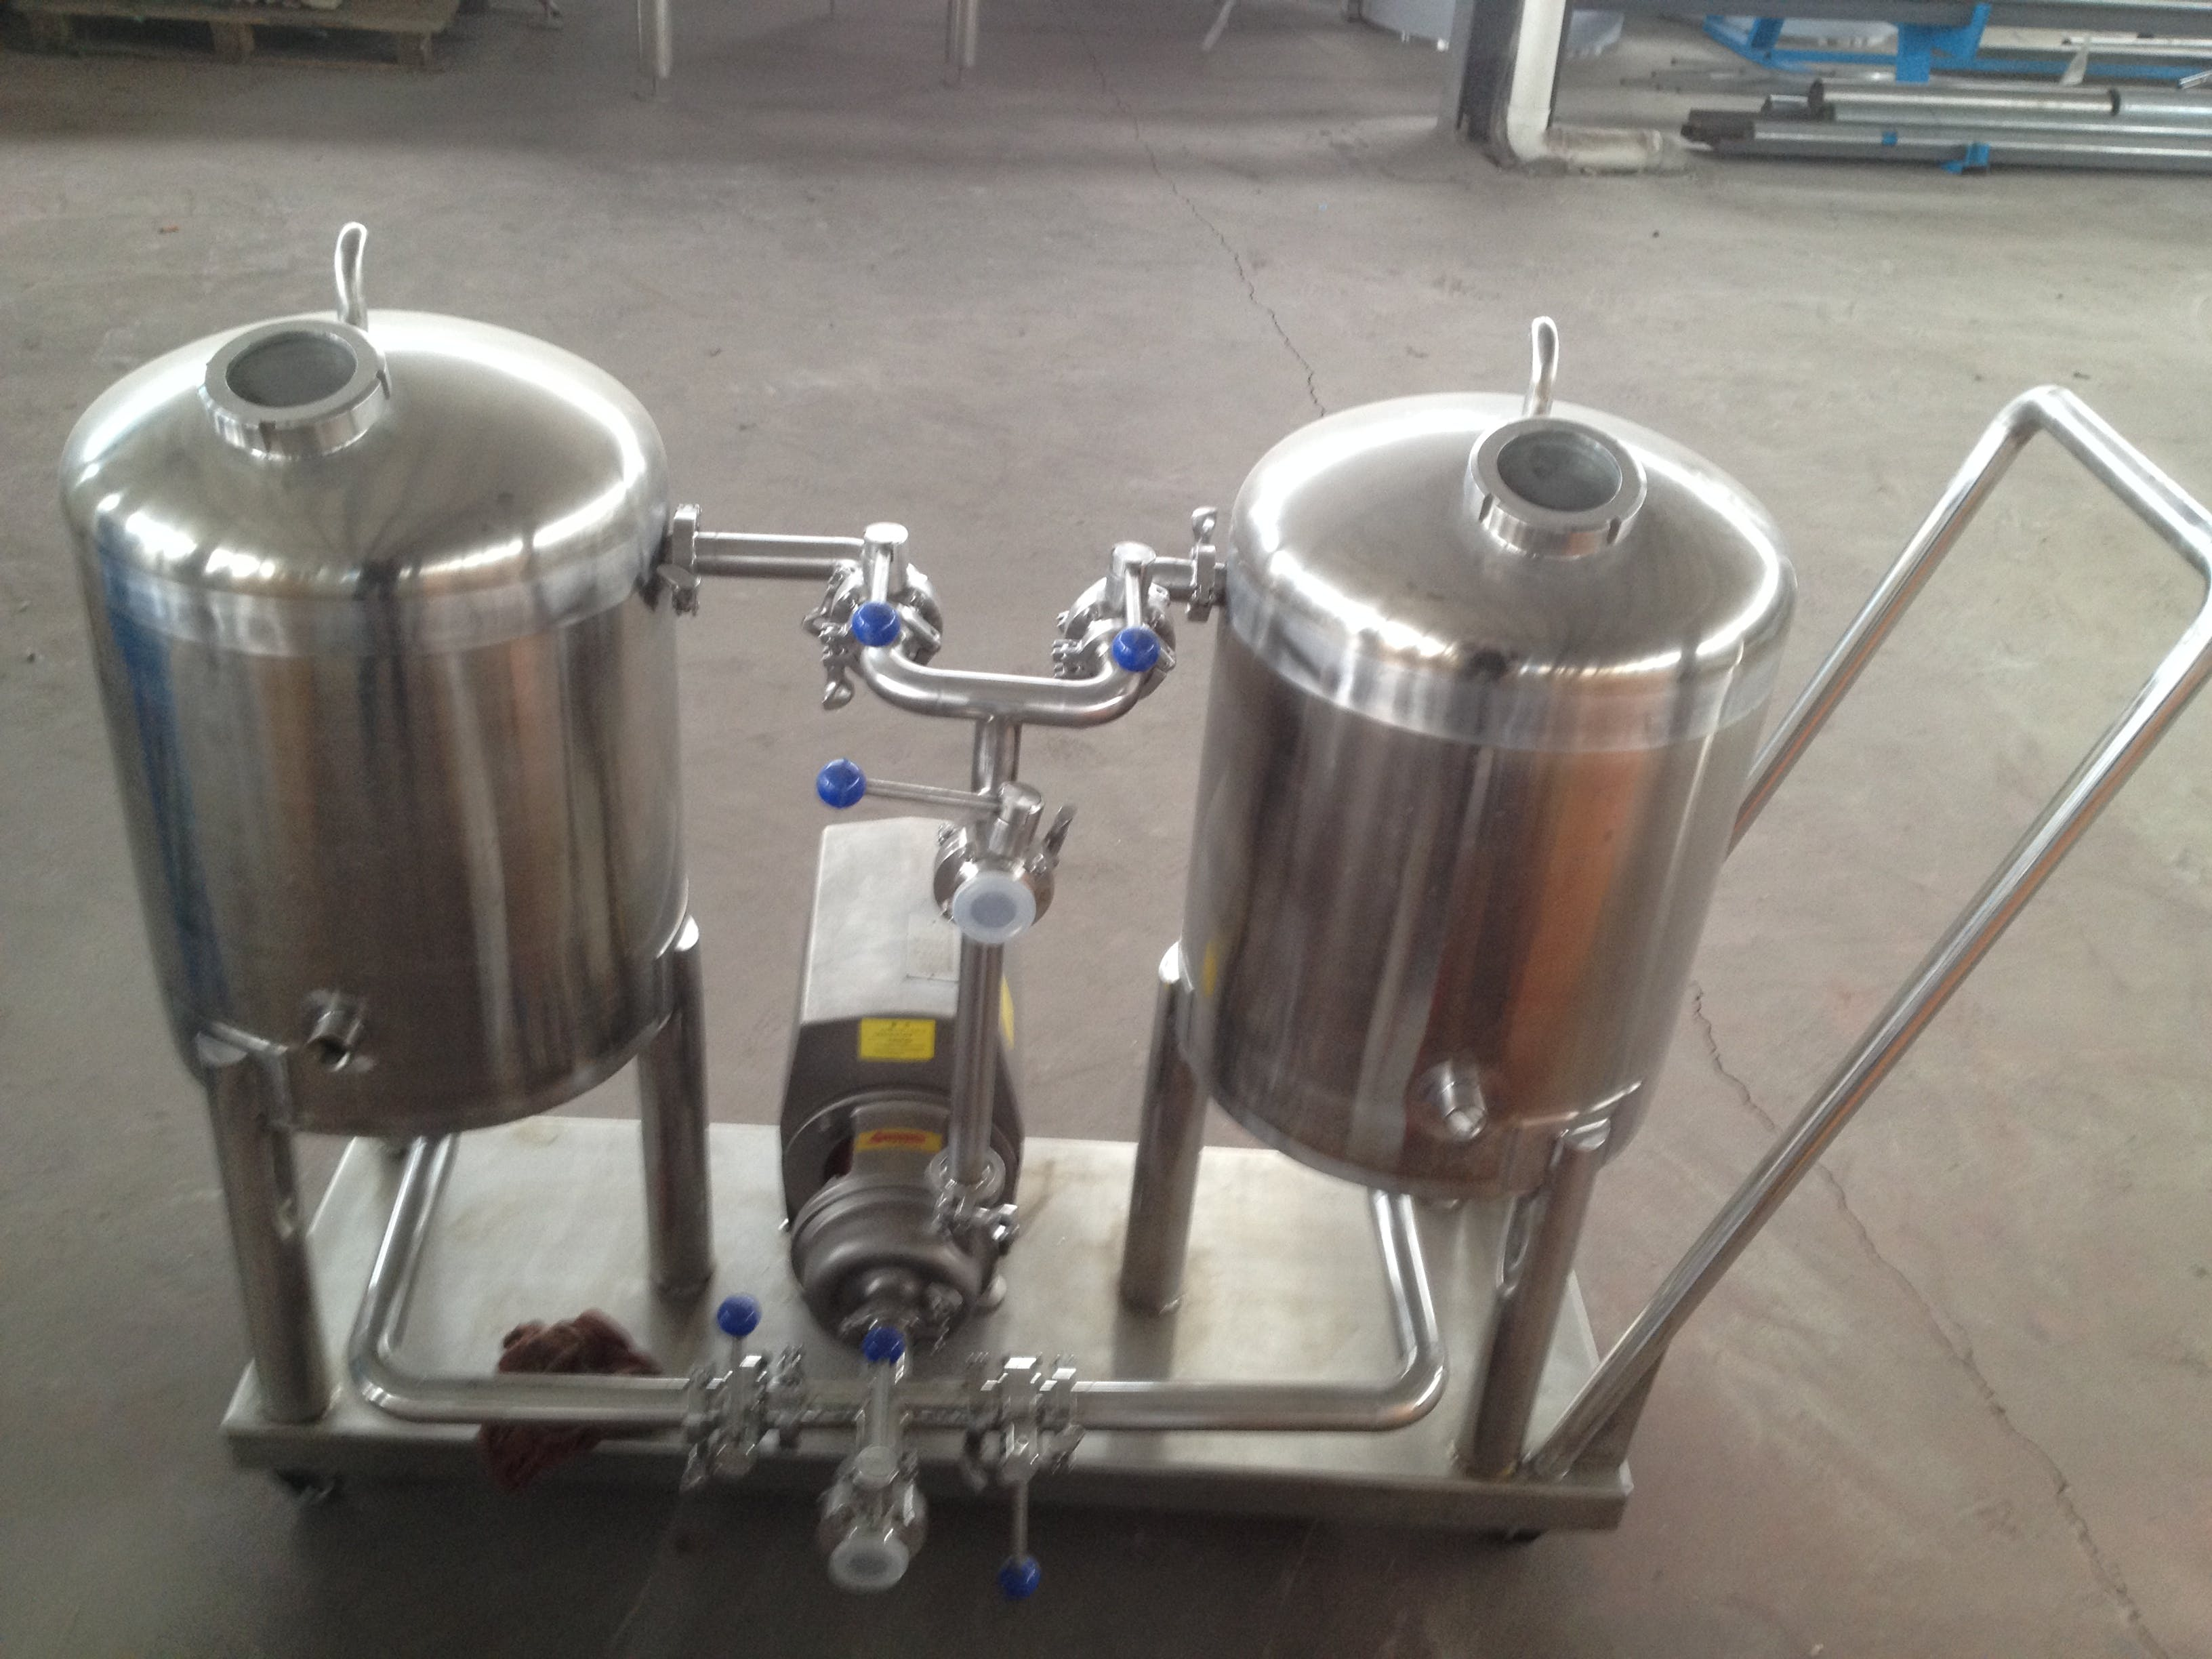 100L CIP cleaning system with dual tanks - sold by XIMO USA